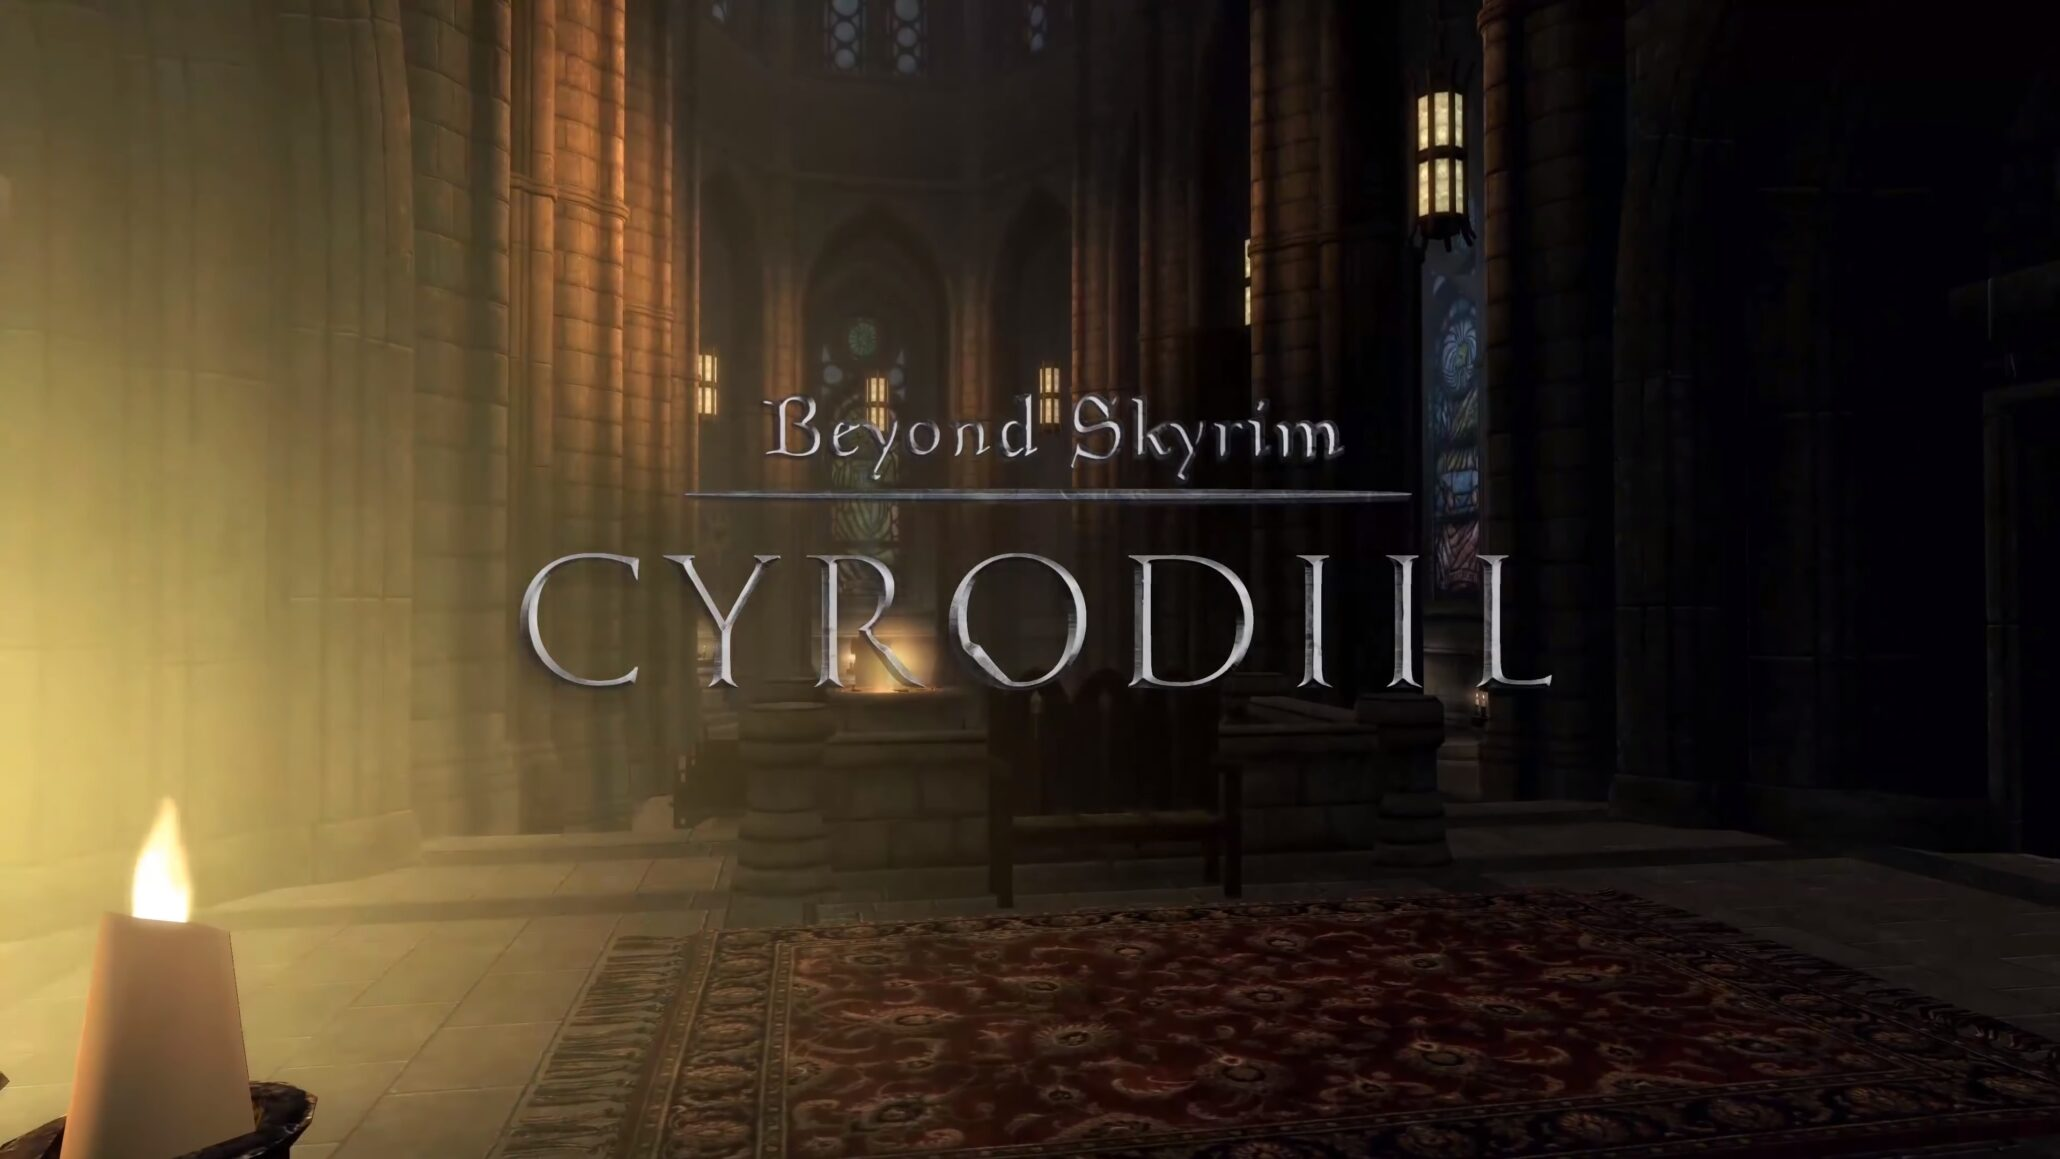 Beyond Skyrim: Cyrodiil Total Conversion Mod Gets New Trailer